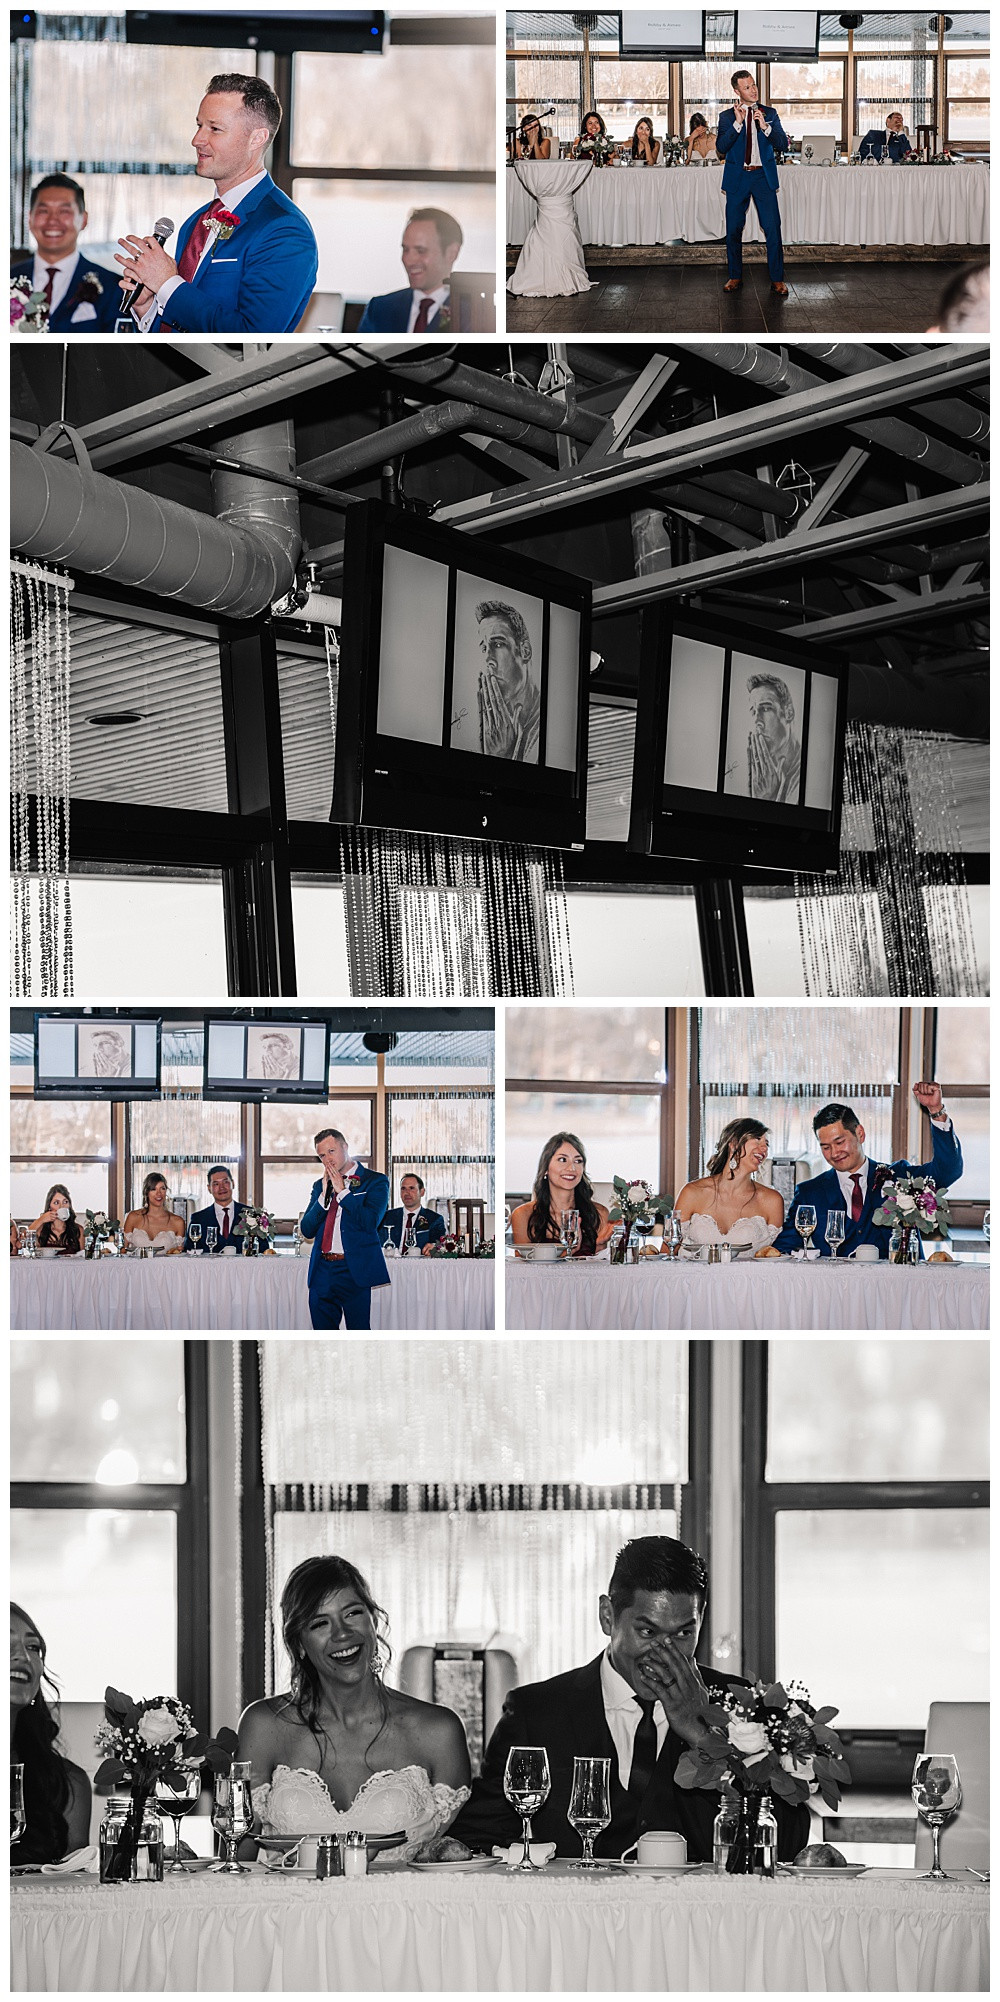 Ottawa Wedding Photographer, Ottawa Wedding Photography, Reception, Lago Bar & Grill, Best Man Speech